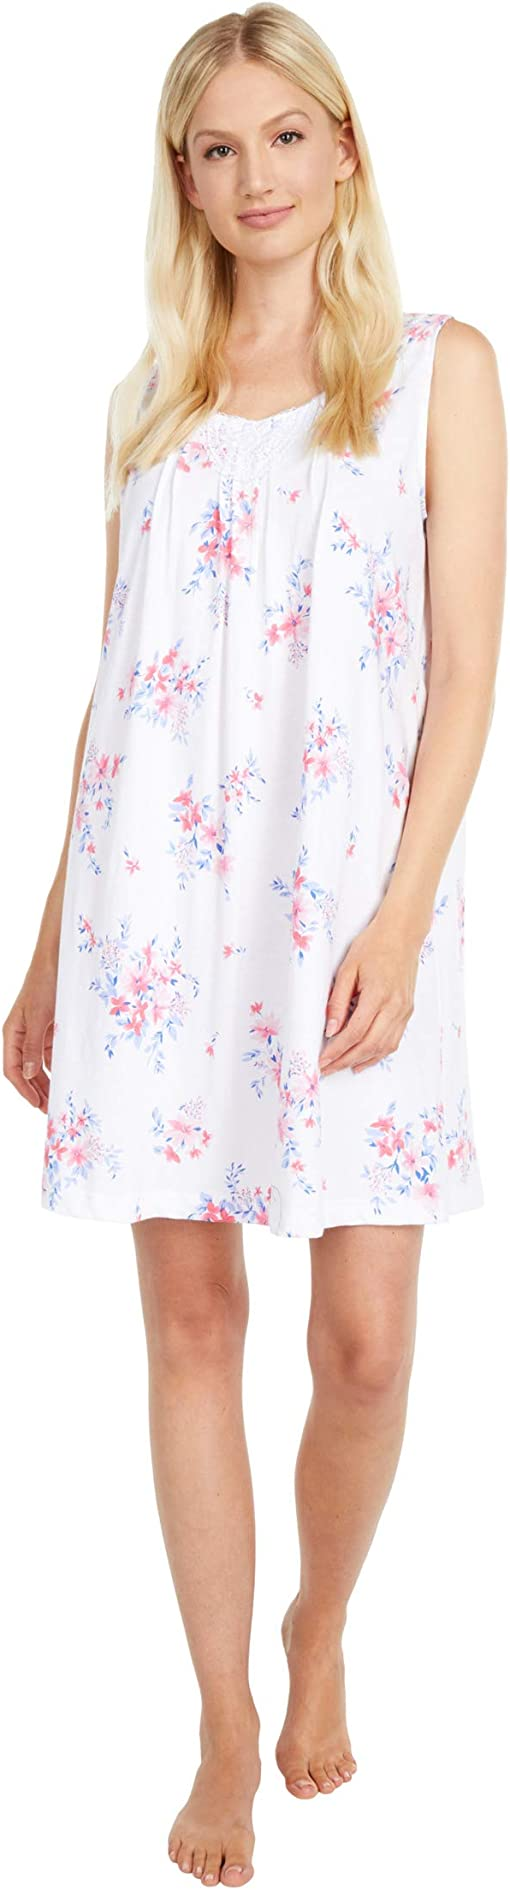 White/Pink Multi Floral